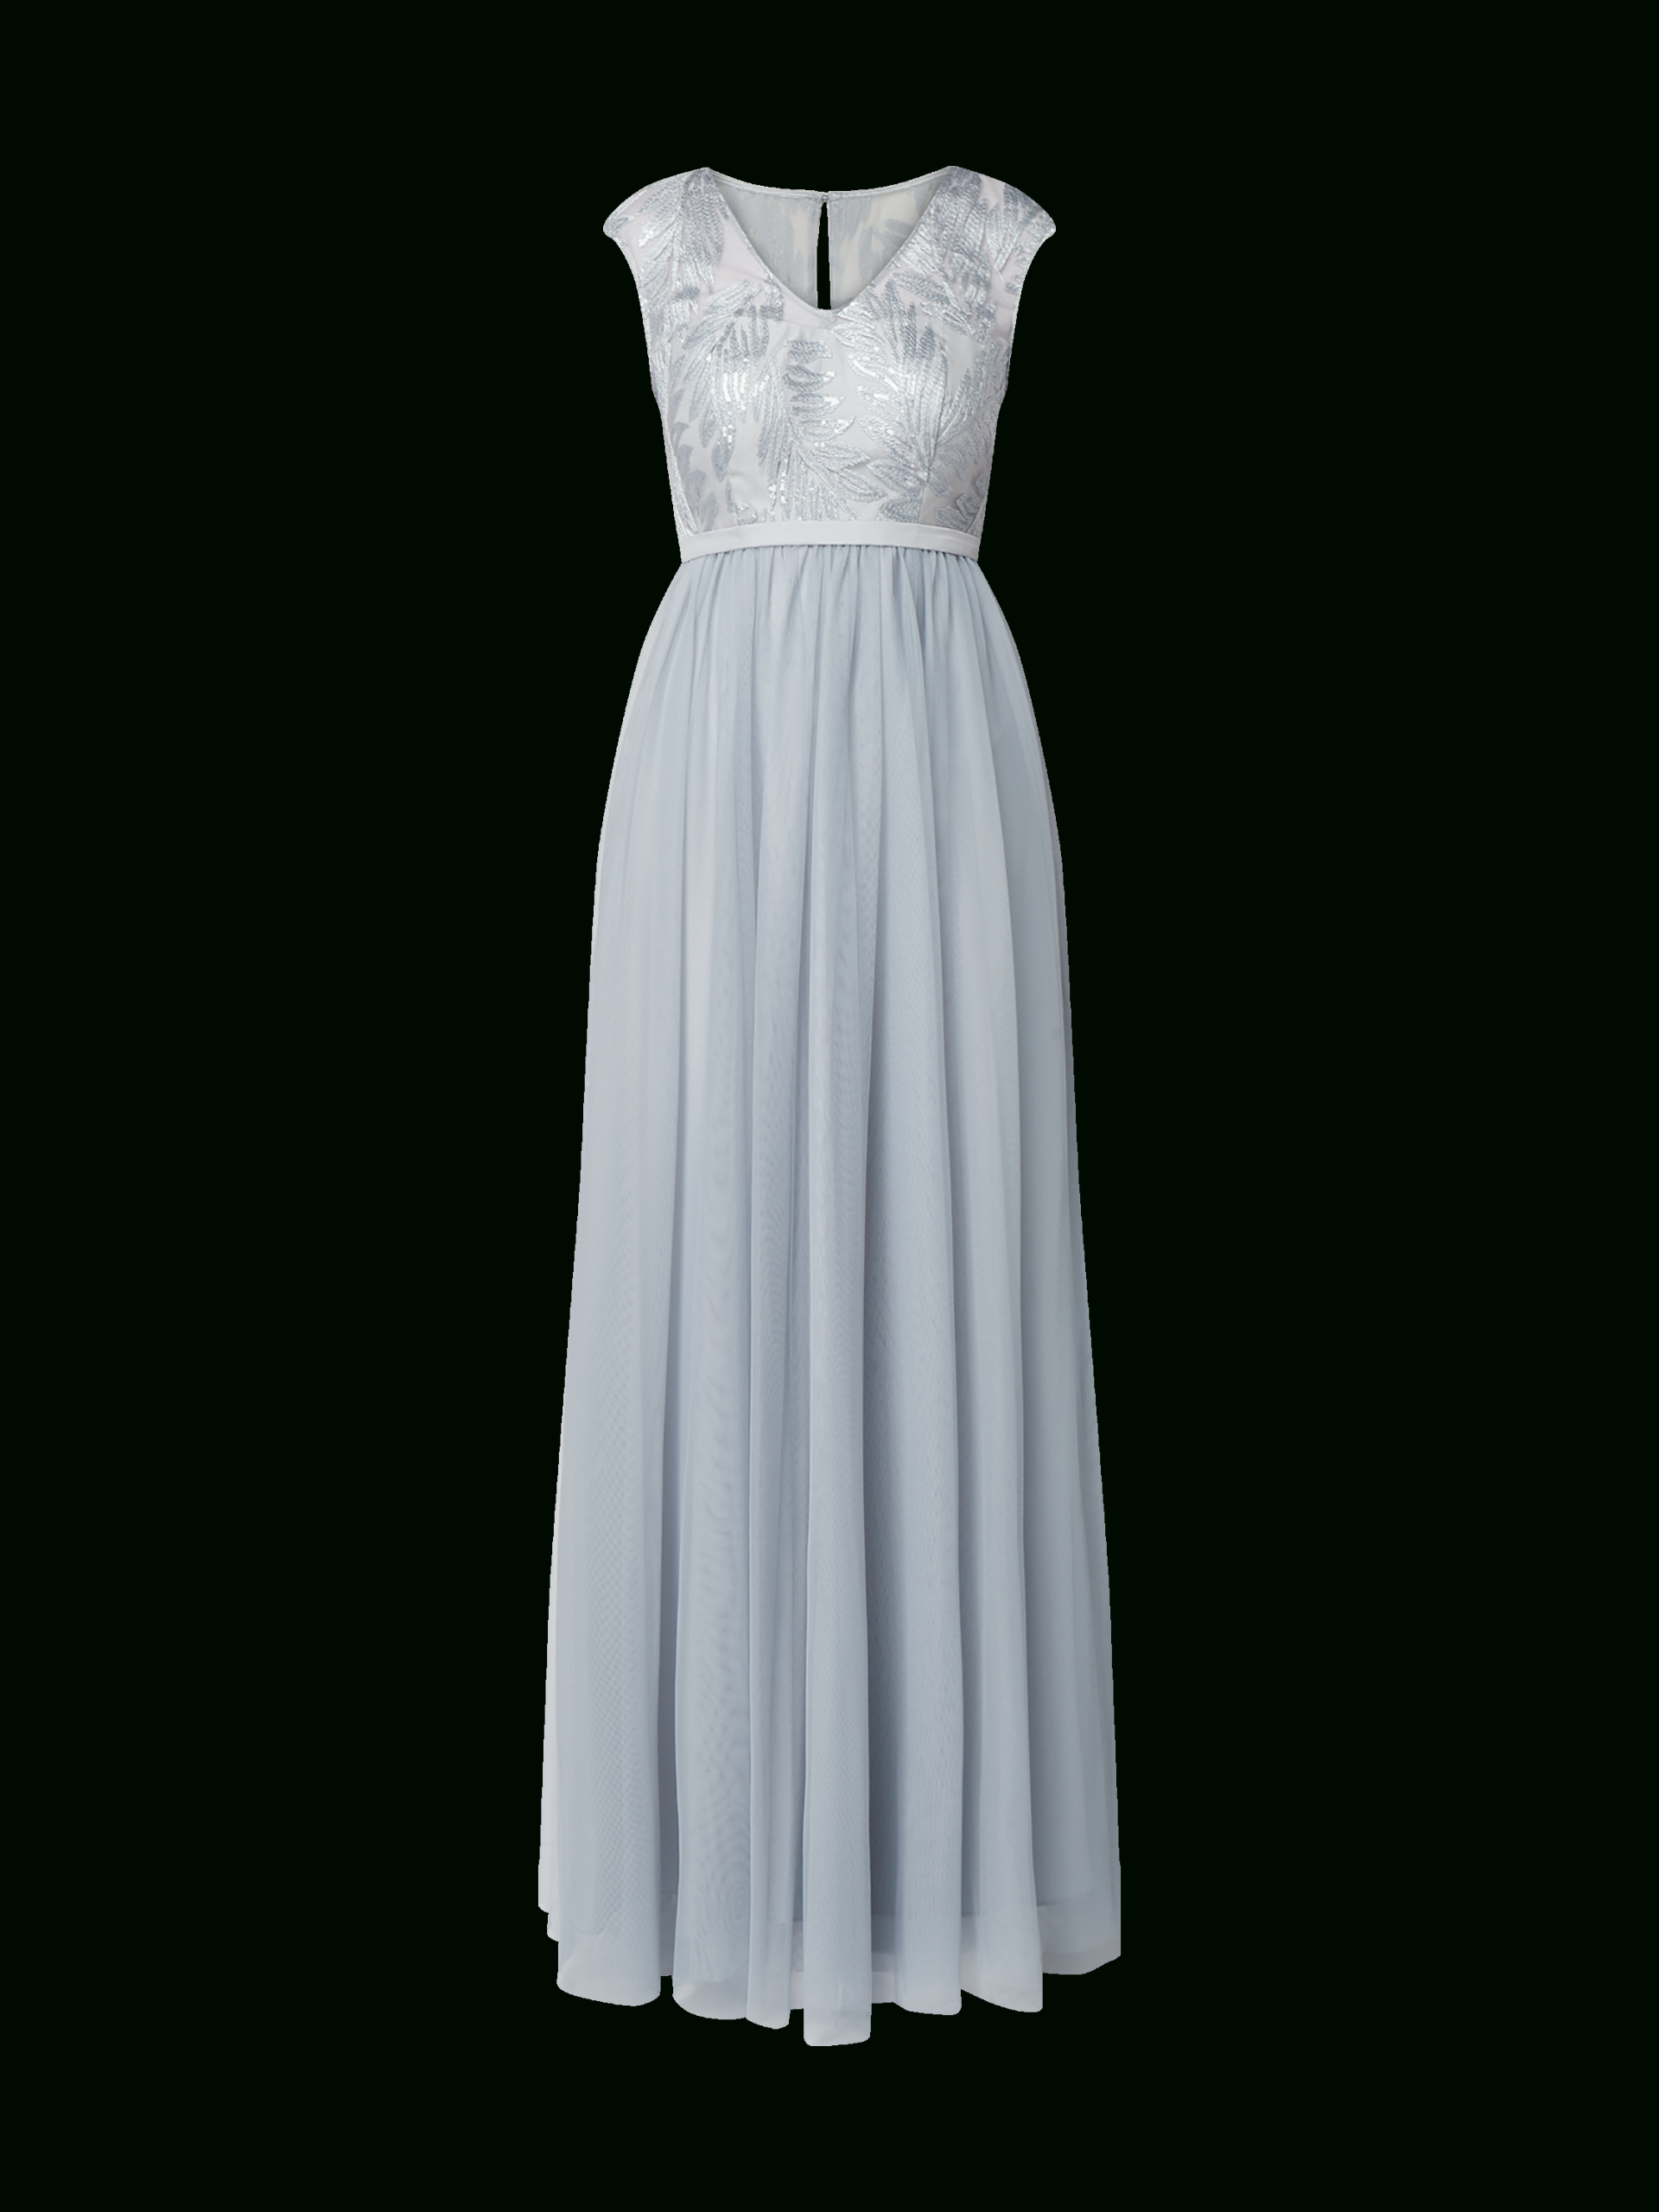 Christian Berg Cocktail – Abendkleid Mit Stickereien – Bleu